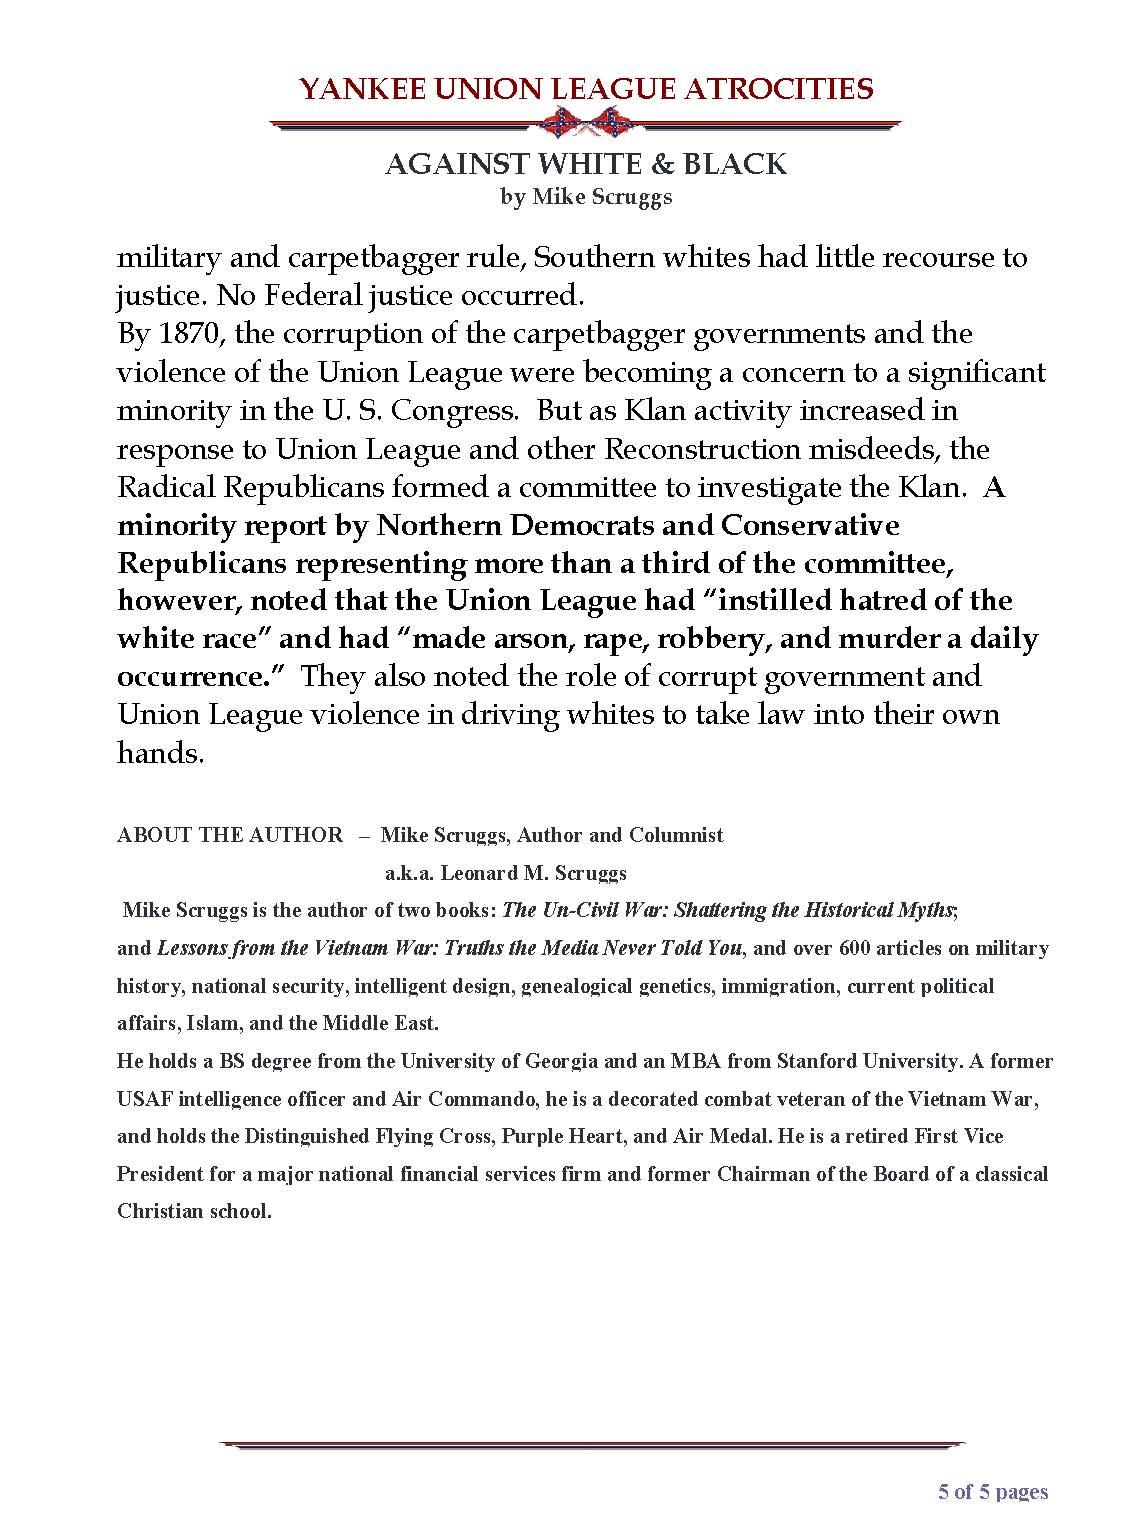 YANKEE UNION LEAGUE ATROCITIES AGAINST WHITE and BLACK_Page_5